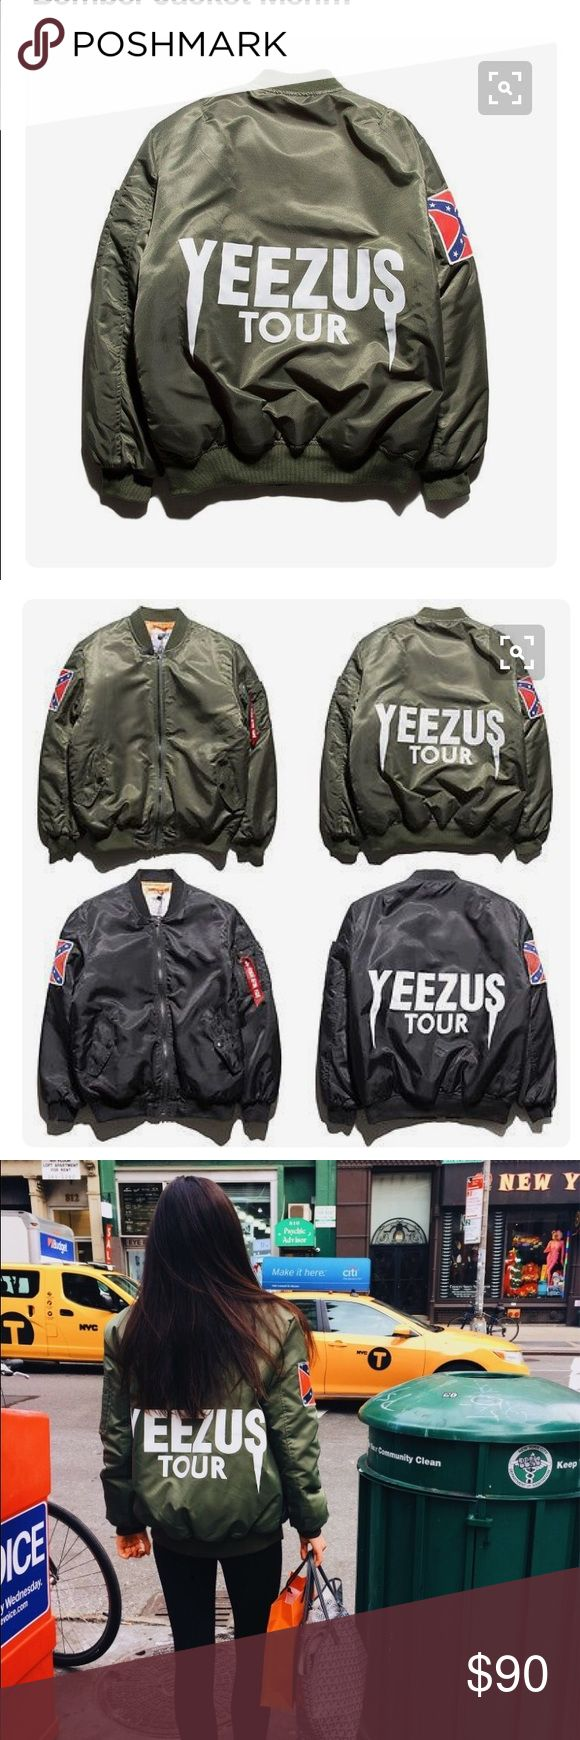 Yeezus Tour bomber Kanye west yeezus tour bomber. Super cute and oversized for the trend. I originally bought a size Large so that it would be oversized and Iegit love the fit. I'm 5'3 and it fit great and my friend is 5'9 and it looked amazing on her too Jackets & Coats